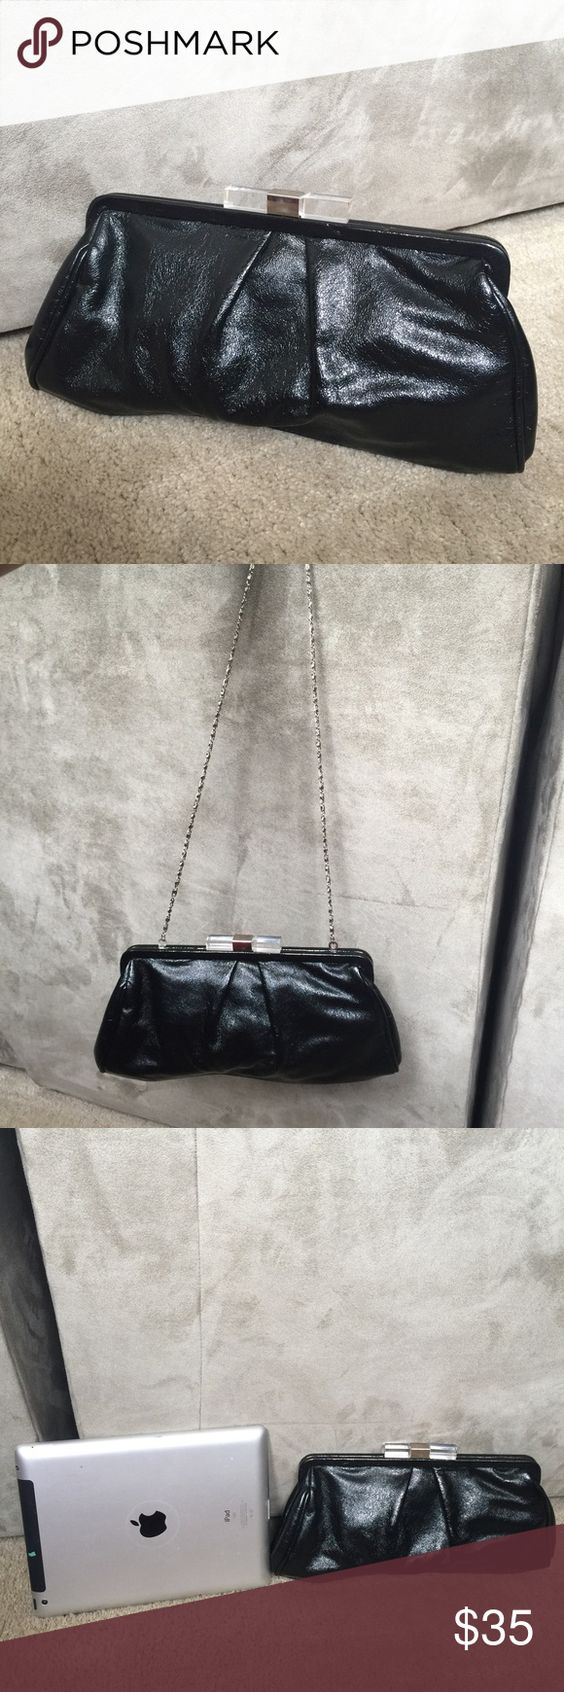 "Black Clutch cross body Lovely black clutch by Chinese Laundry. I believe it is faux leather and not real leather. Has a chain strap that allows it to be worn both as a clutch and as a cross-body or on the shoulder. Strap is approximately 18.5"" long. Features a clear and silver clasp closure. Good used condition.  Good for casual or cocktail wear. Bags Crossbody Bags"